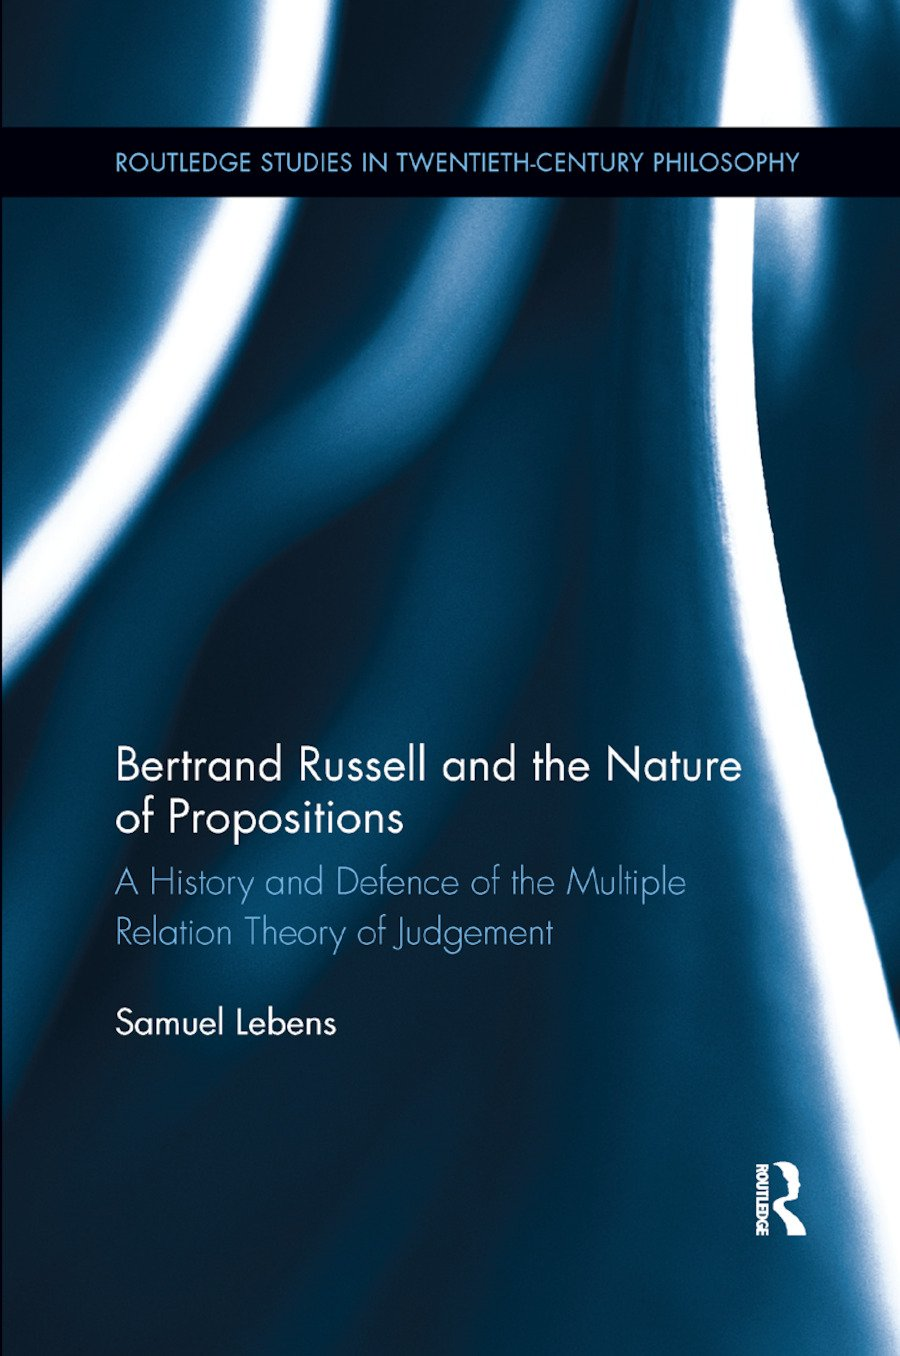 Bertrand Russell and the Nature of Propositions: A History and Defence of the Multiple Relation Theory of Judgement book cover